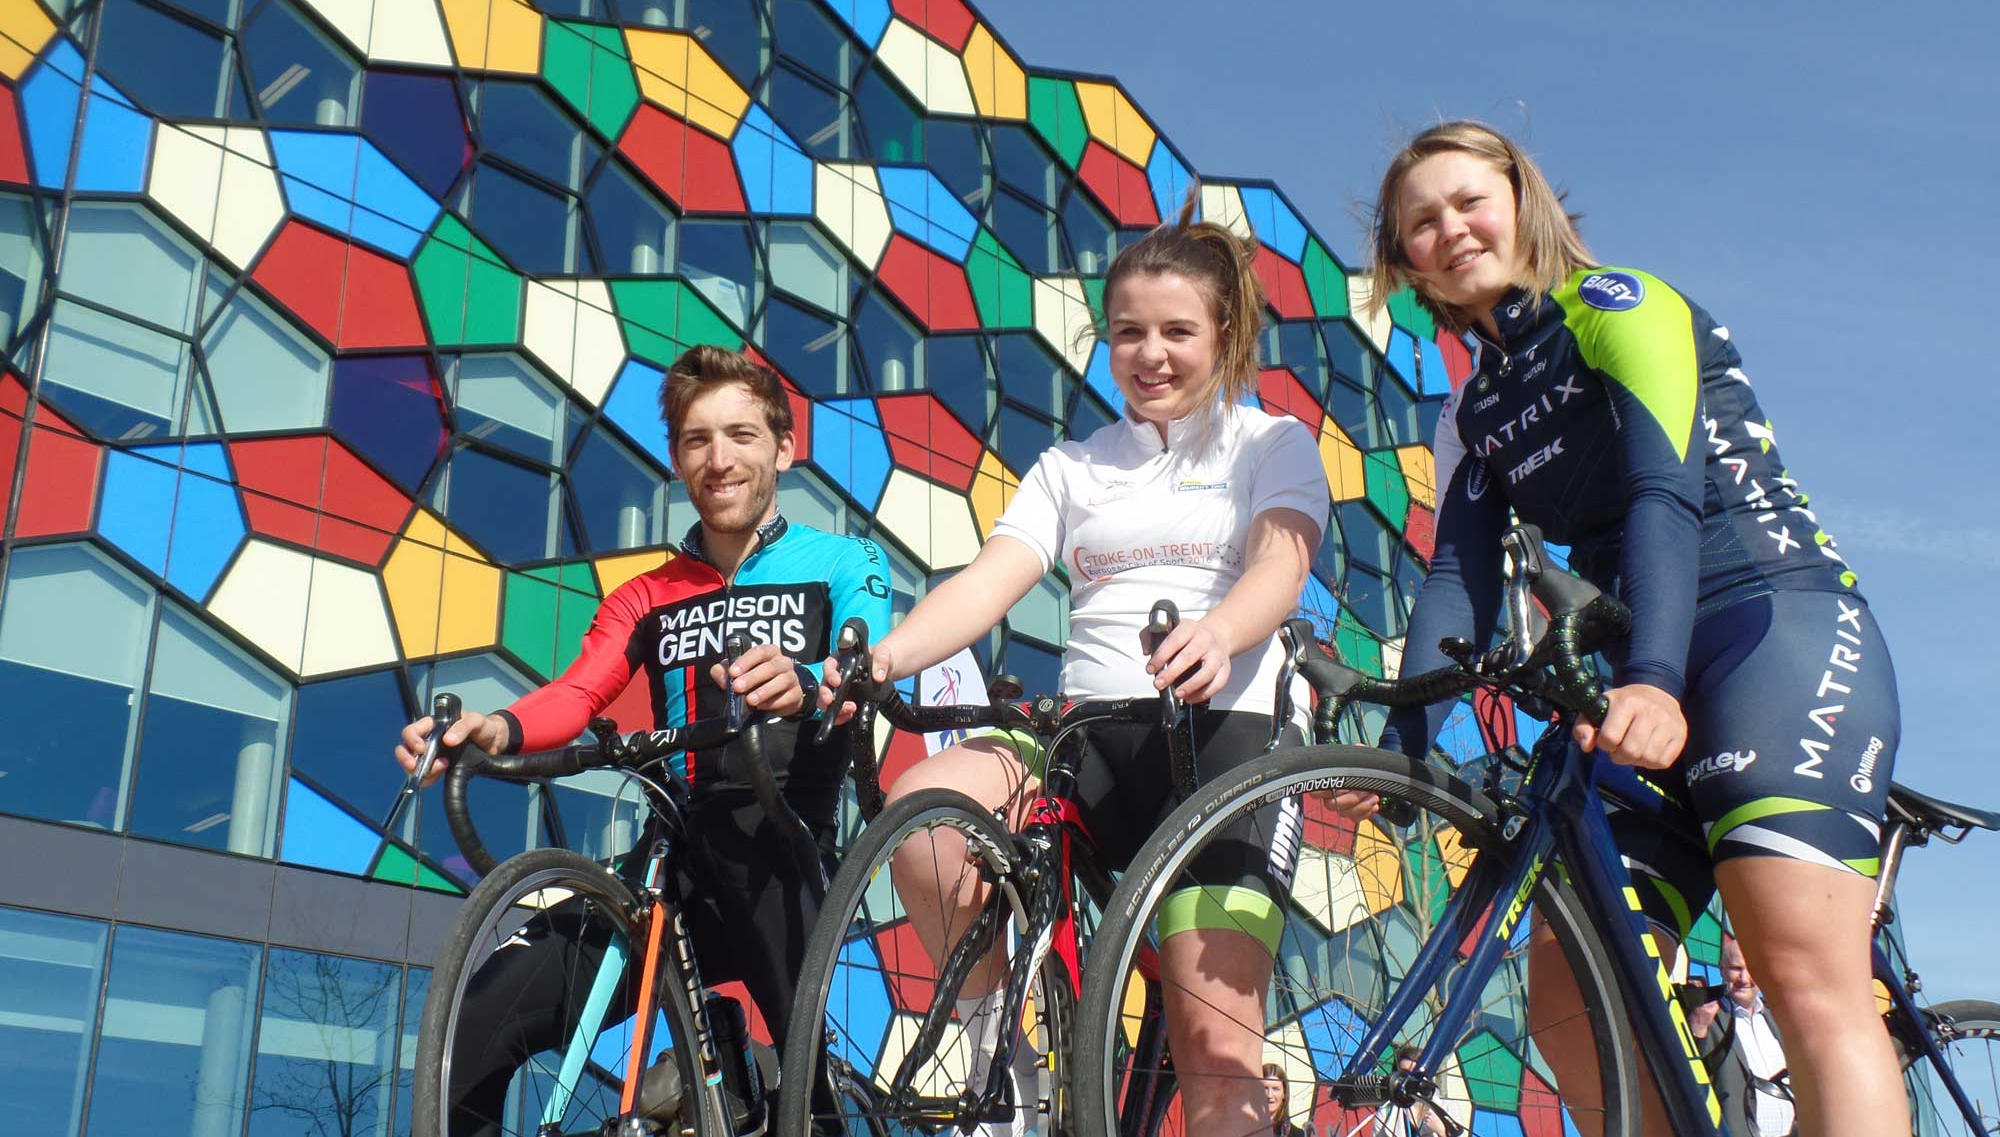 Stoke-on-Trent ready to welcome two major cycling races